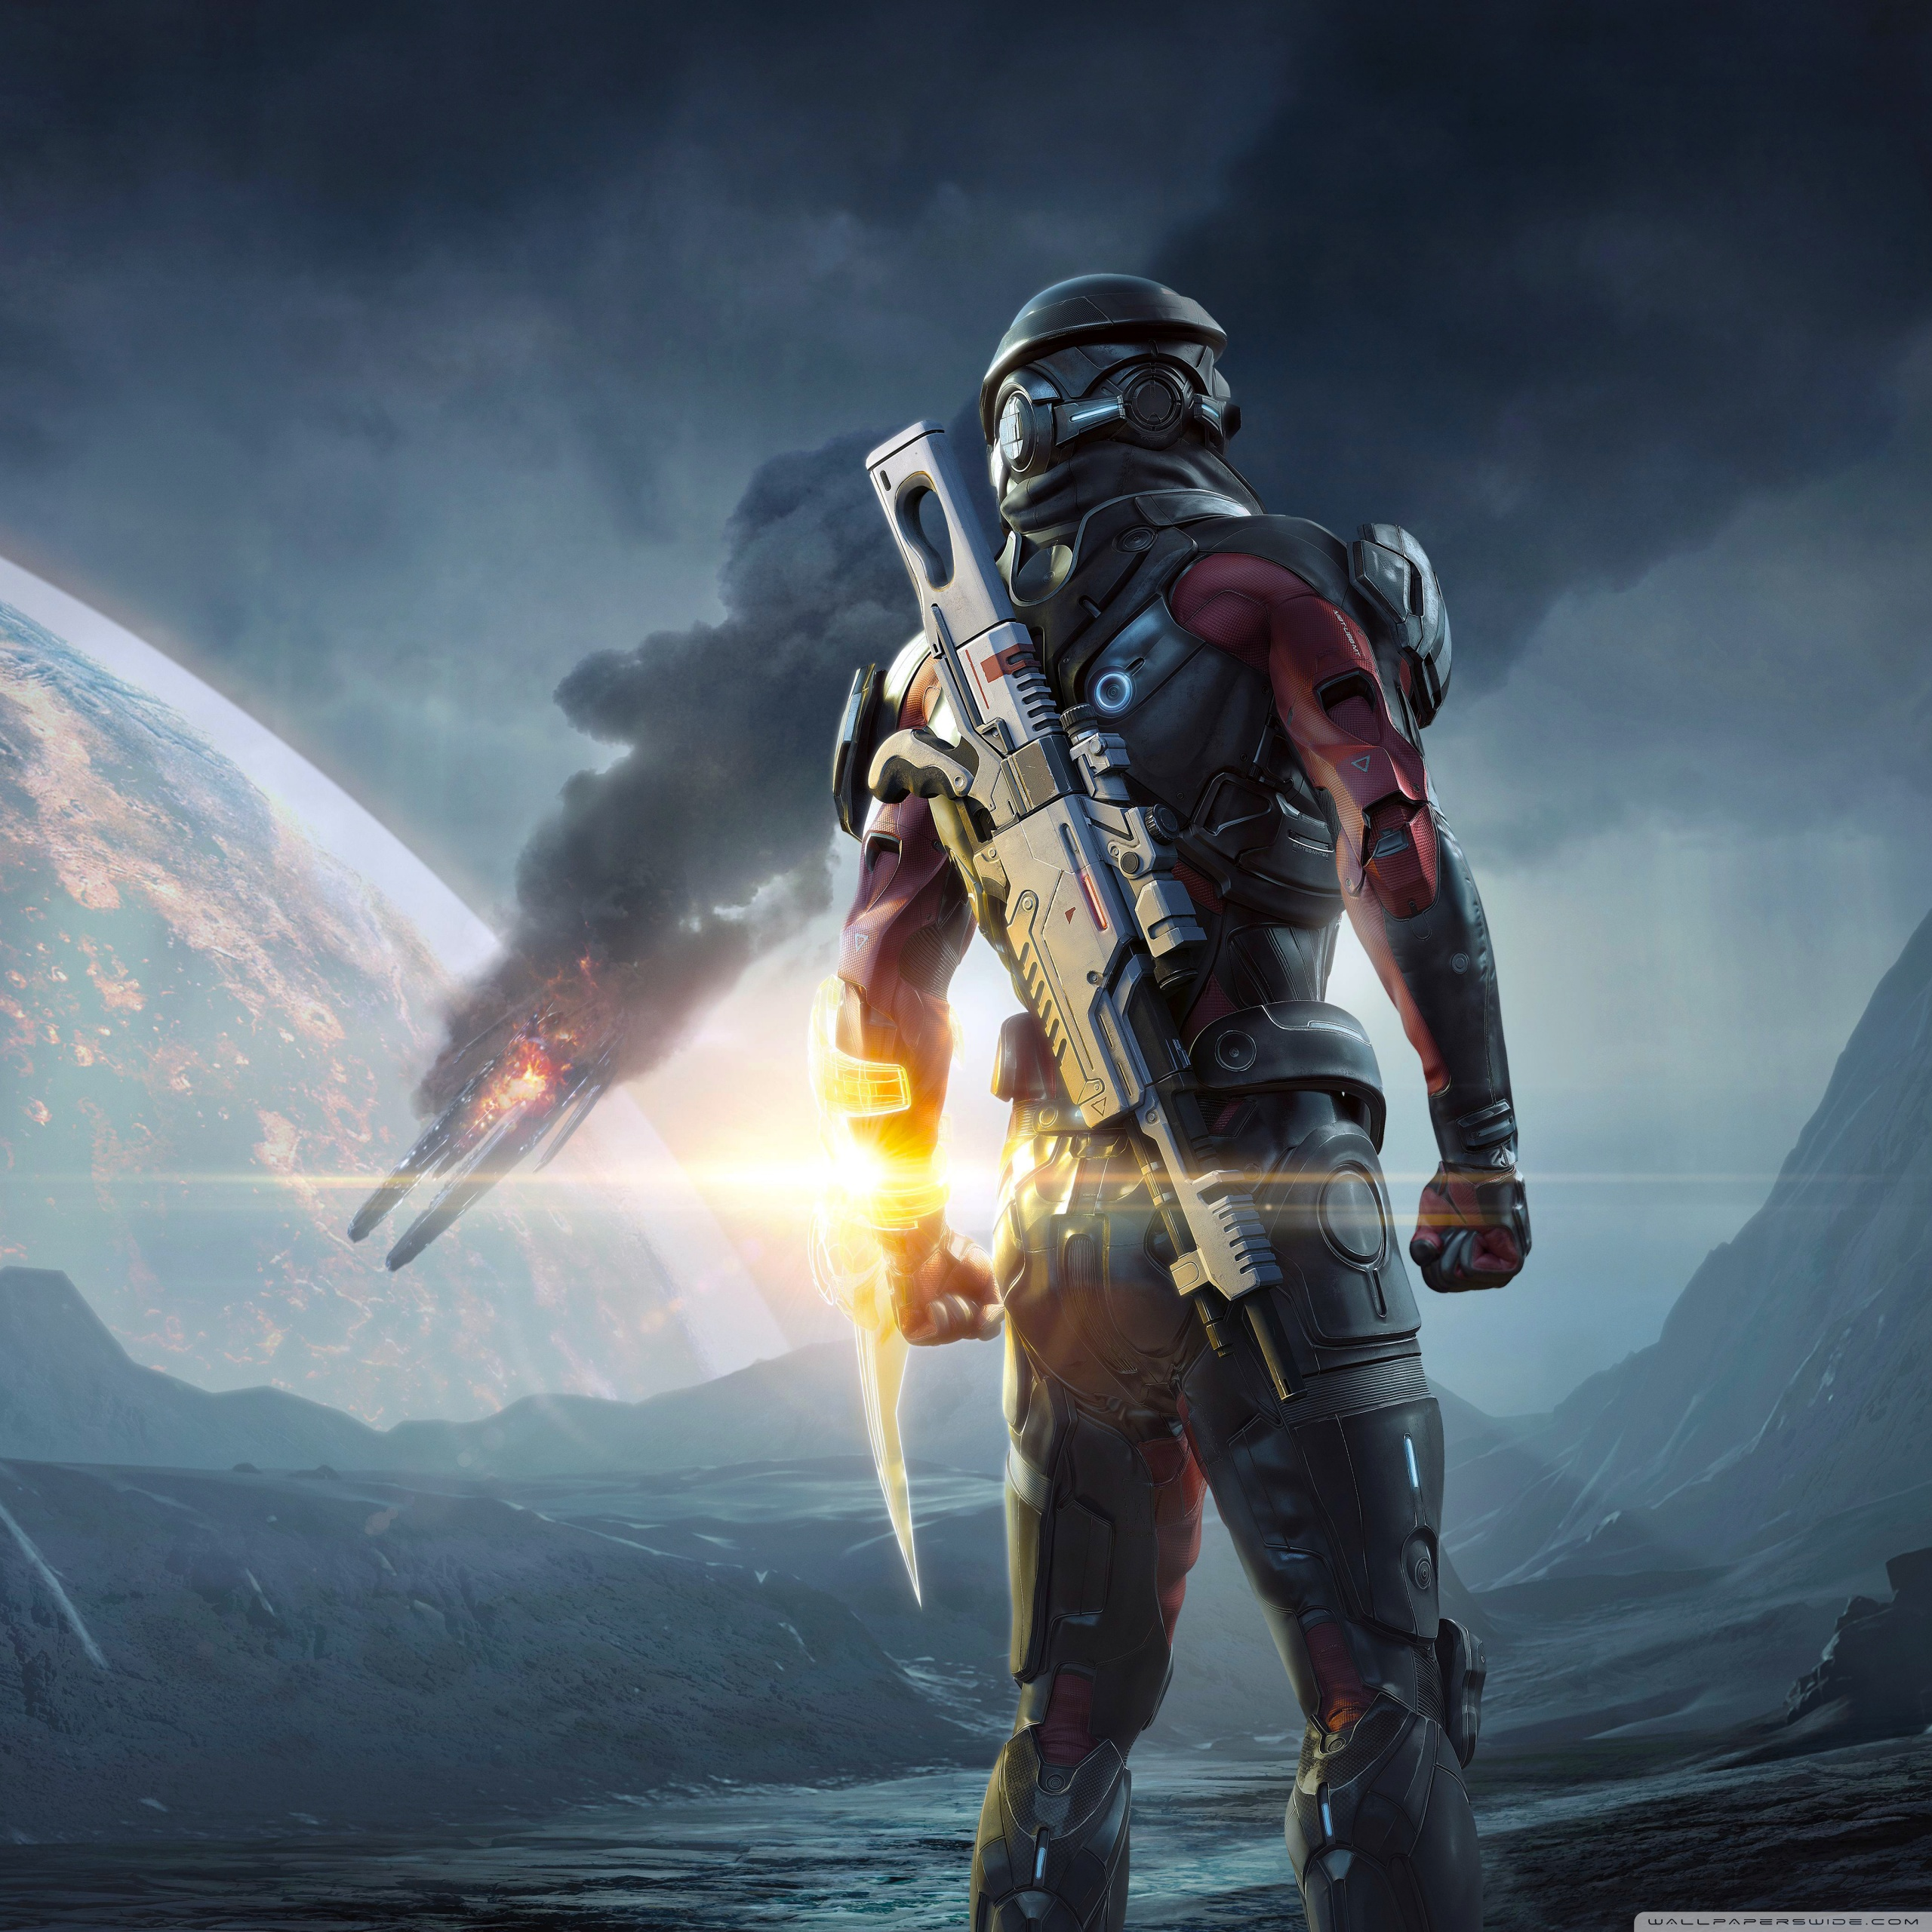 Mass Effect Andromeda 2017 Video Game 3d Hd Wallpapers